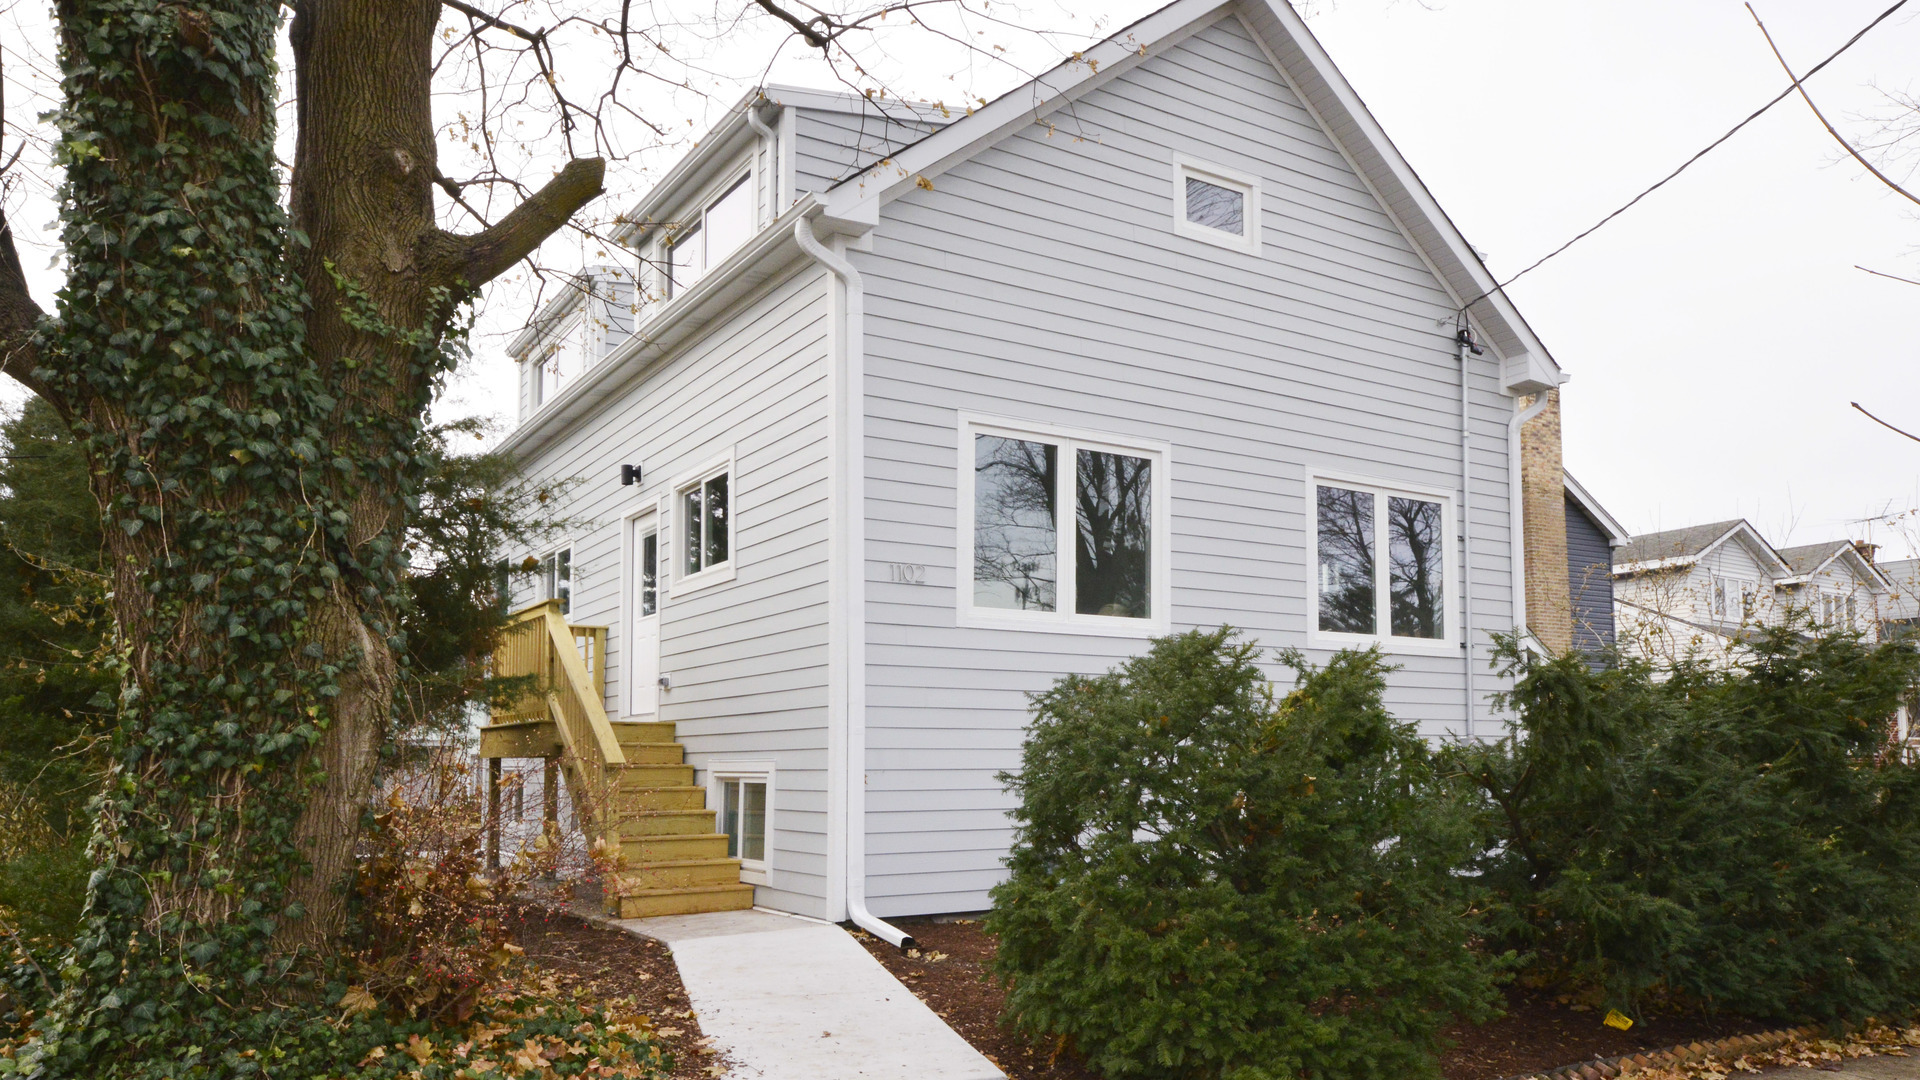 1102 Pitner Avenue 60202 - One of Evanston Homes for Sale